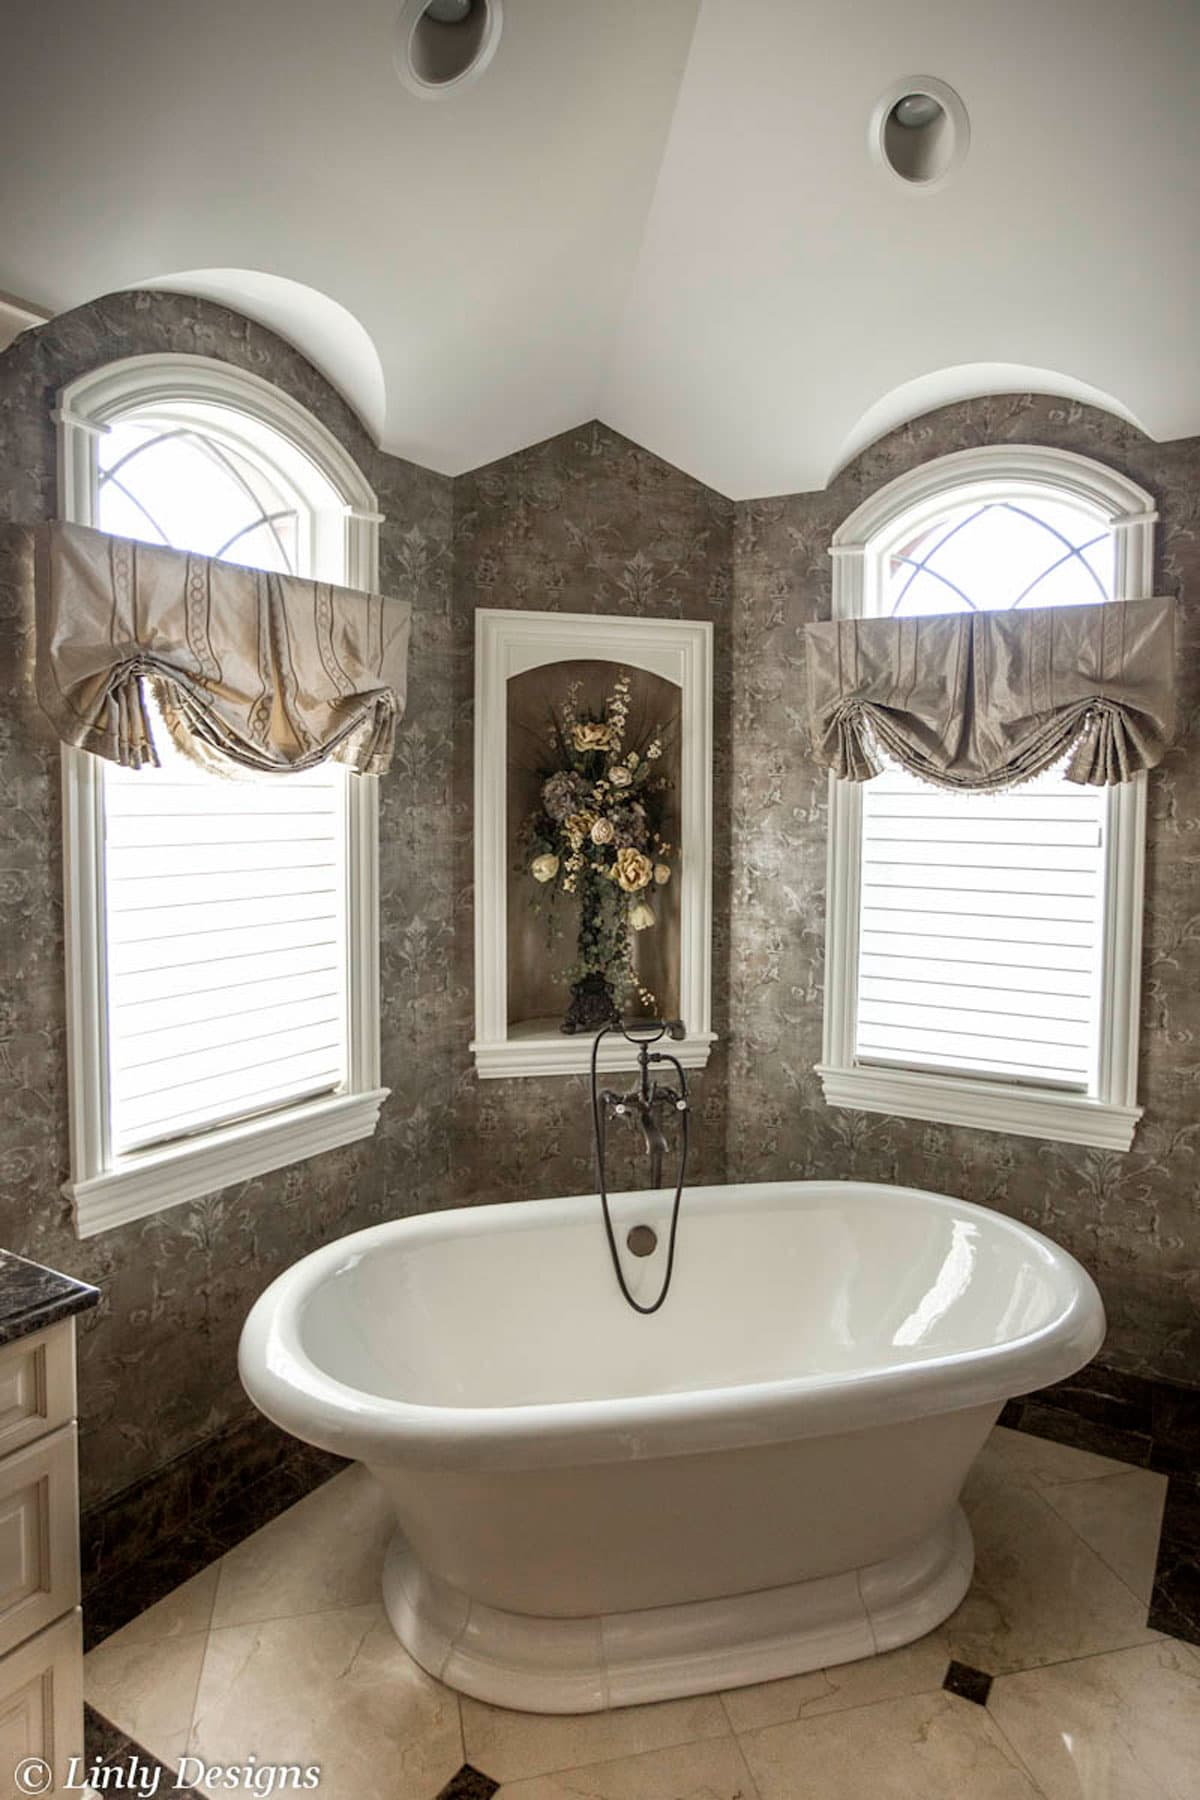 window treatment ideas for bathroom custom window treatments projects linly designs 26241